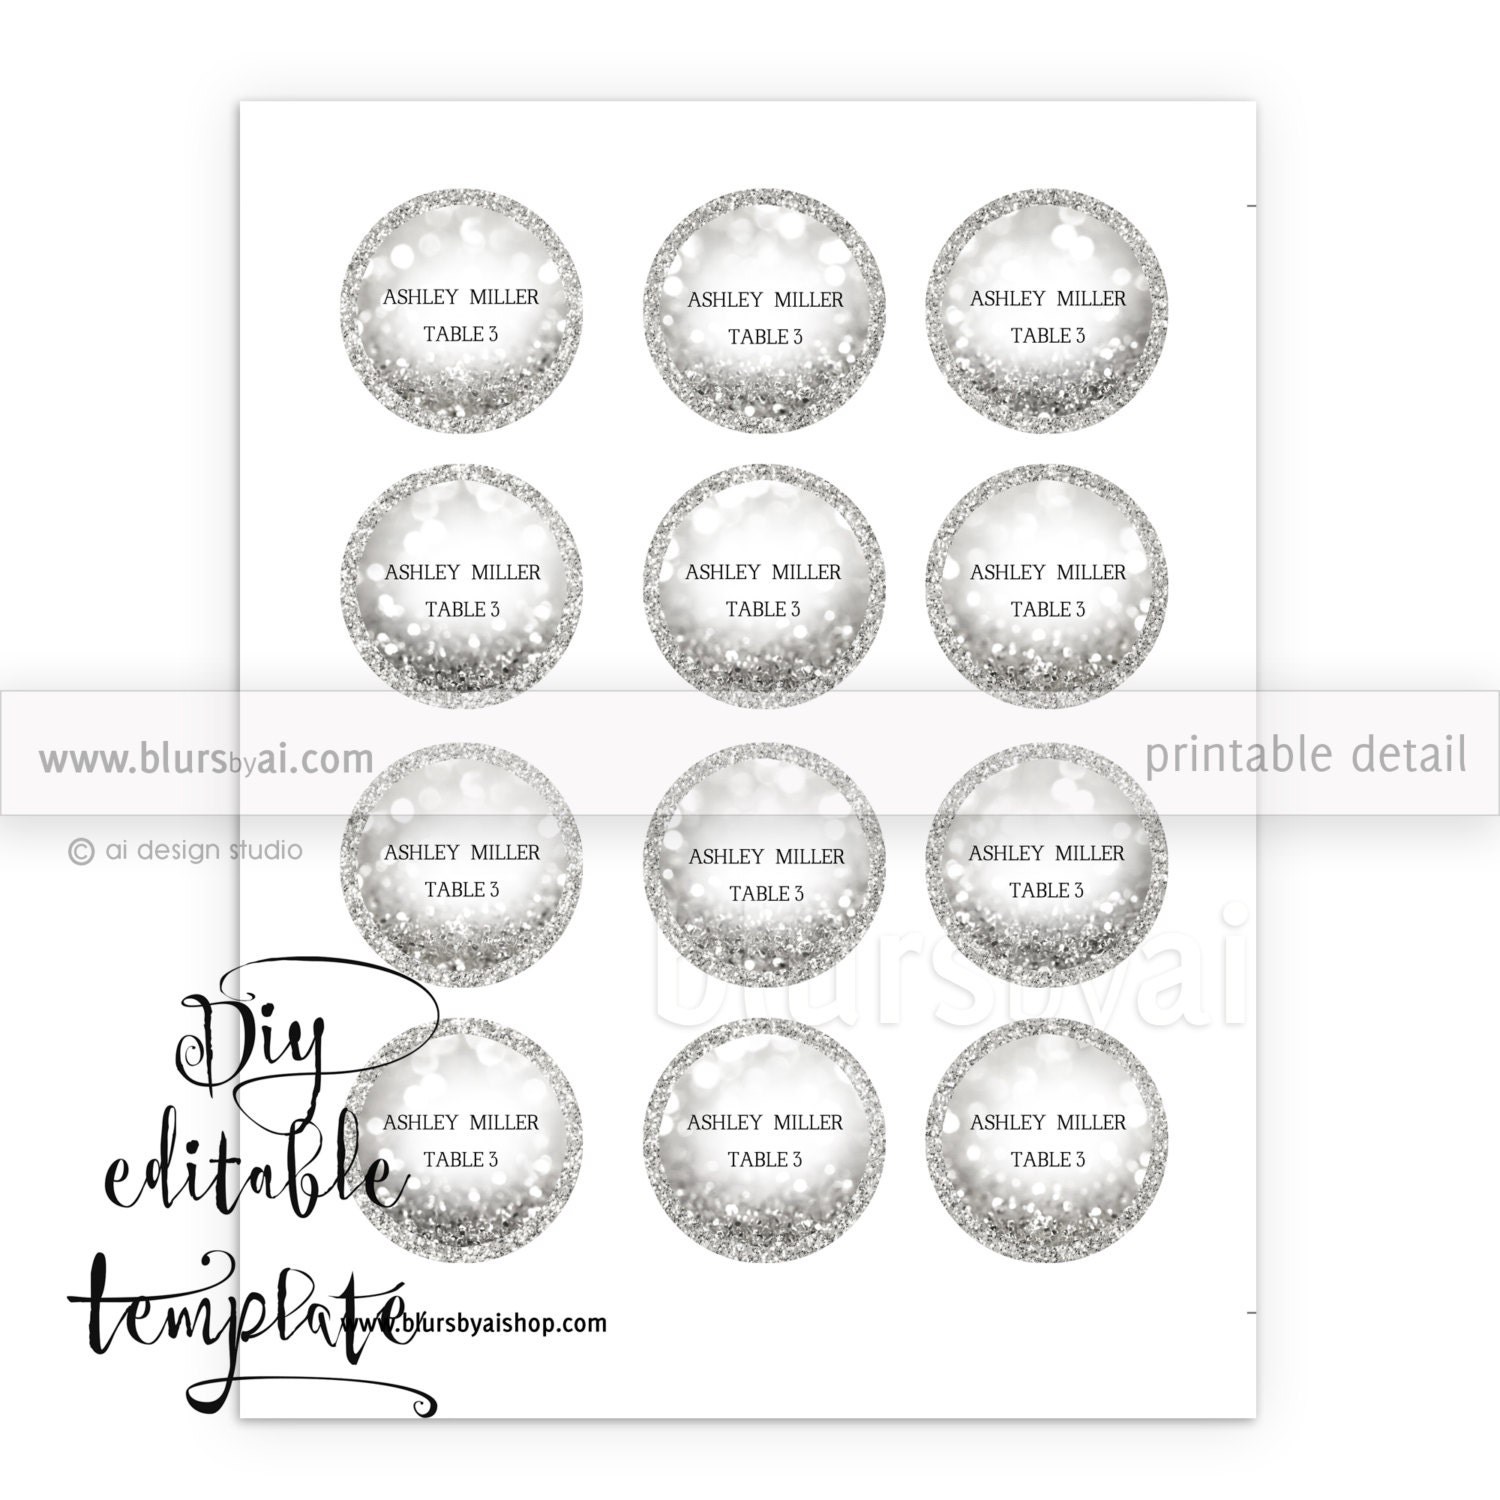 This is a photo of Sweet Printable Escort Cards